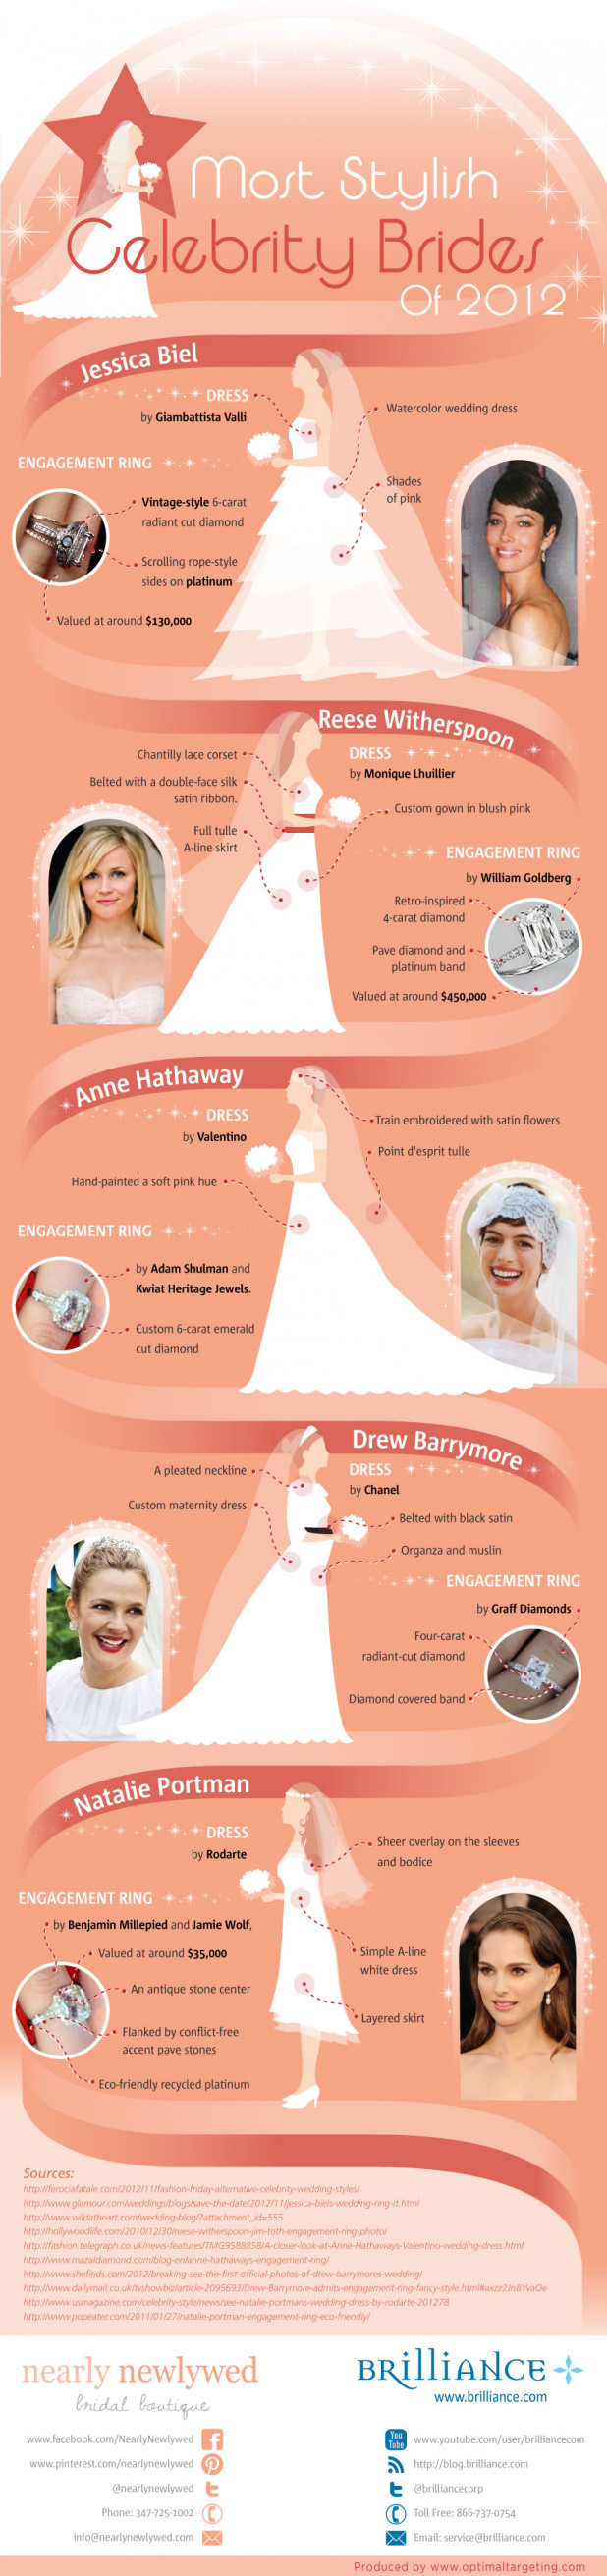 Most Stylish Celebrity Brides Of 2012